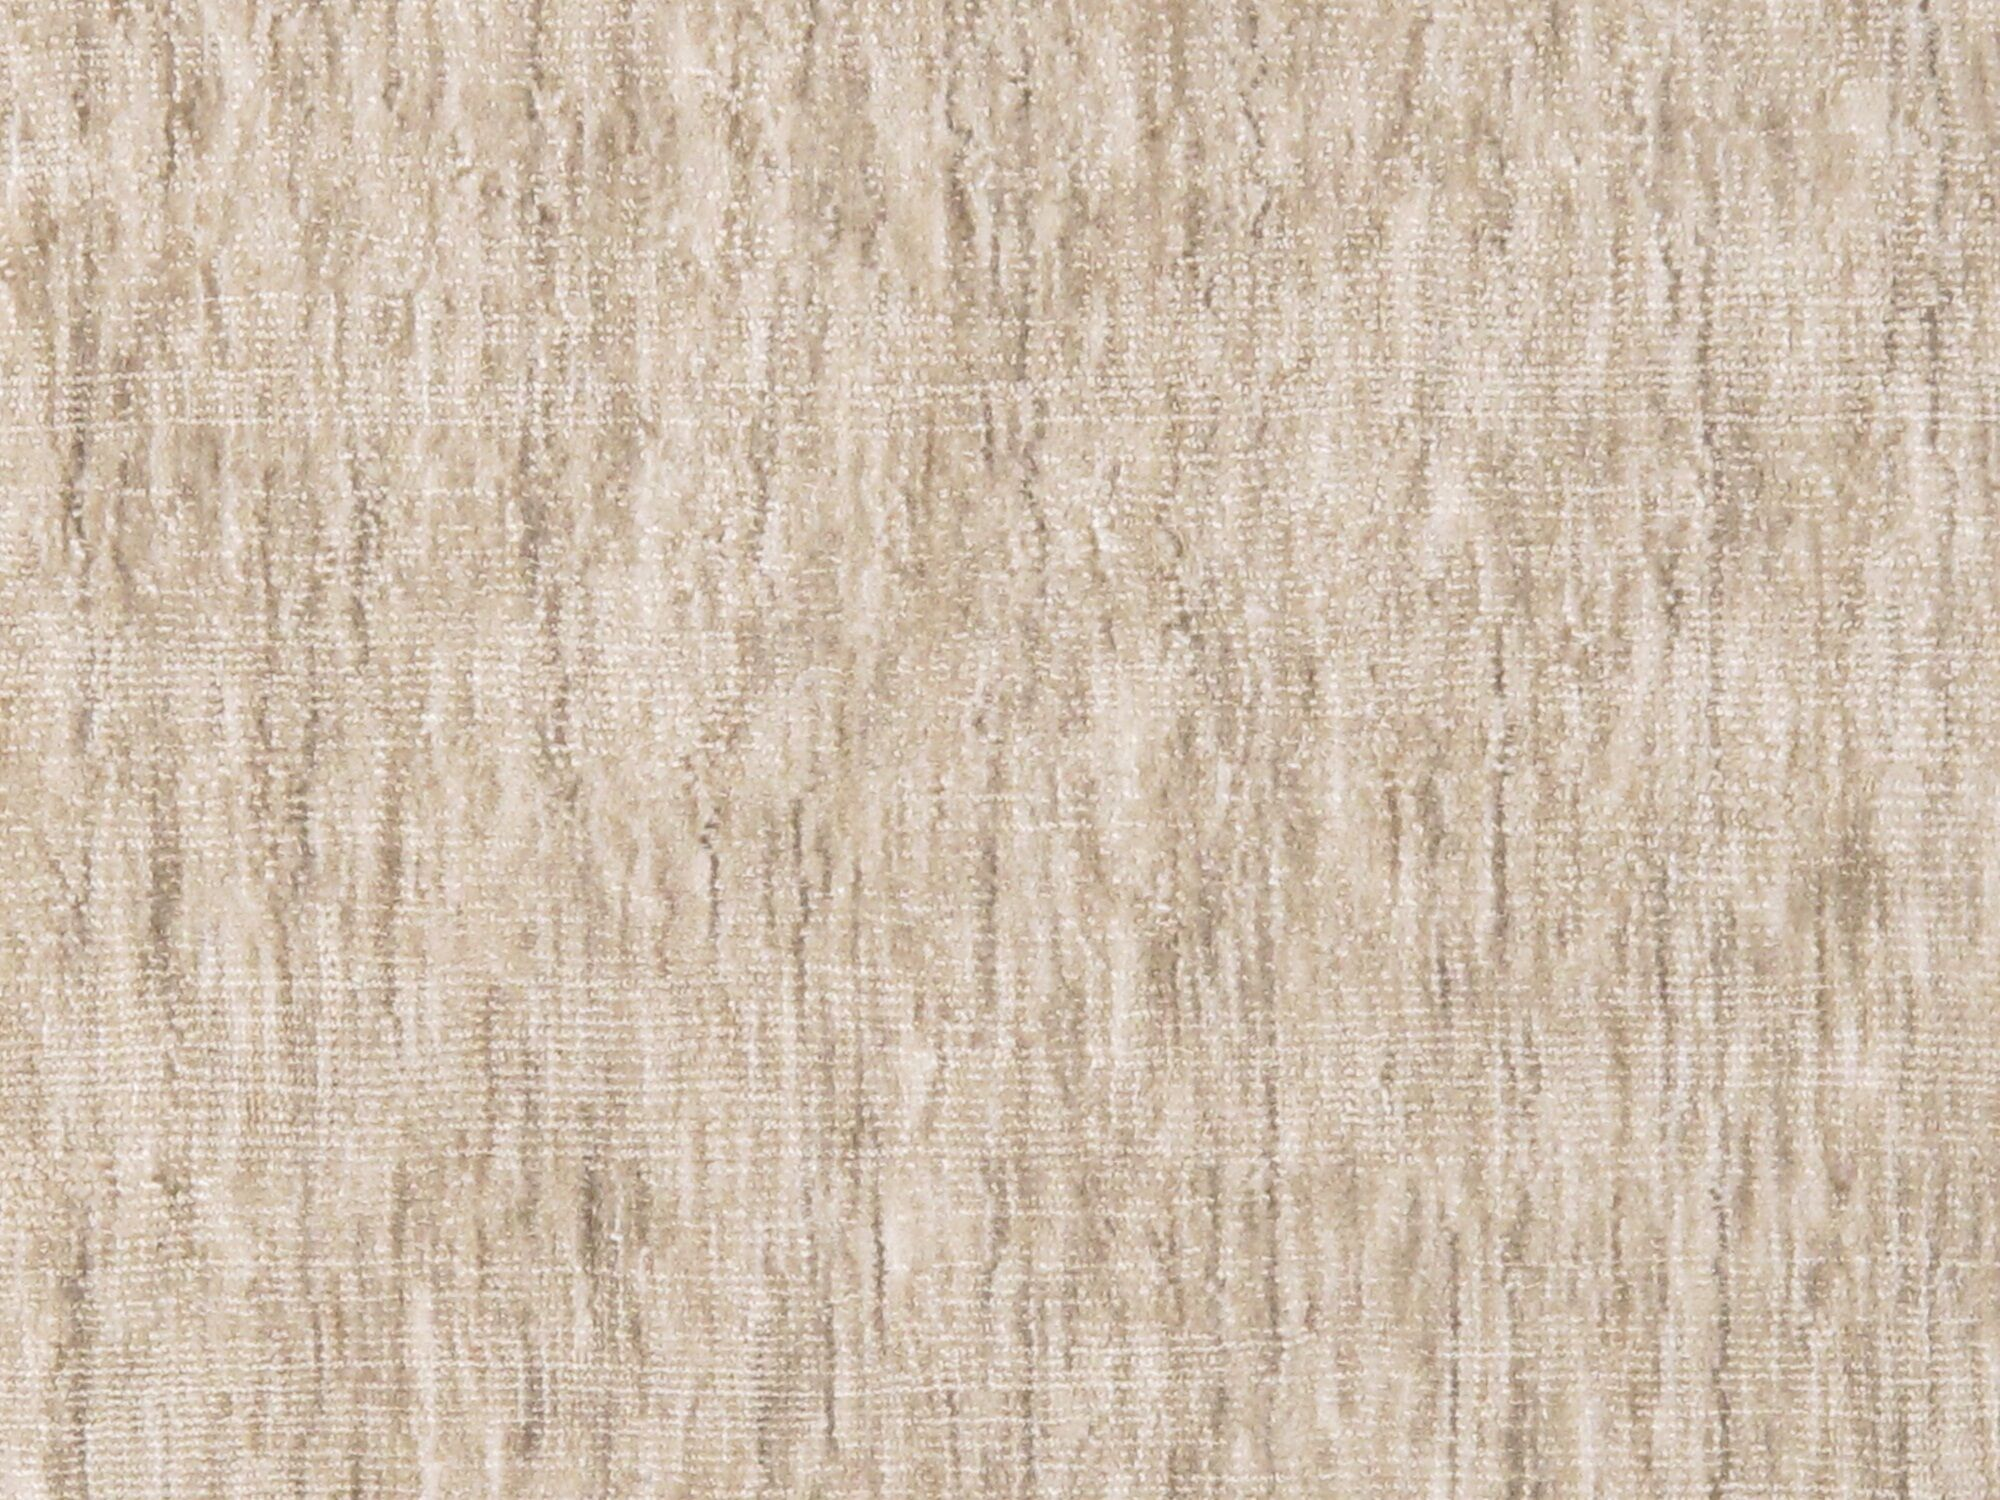 Transitiona Hand Loomed Beige Area Rug